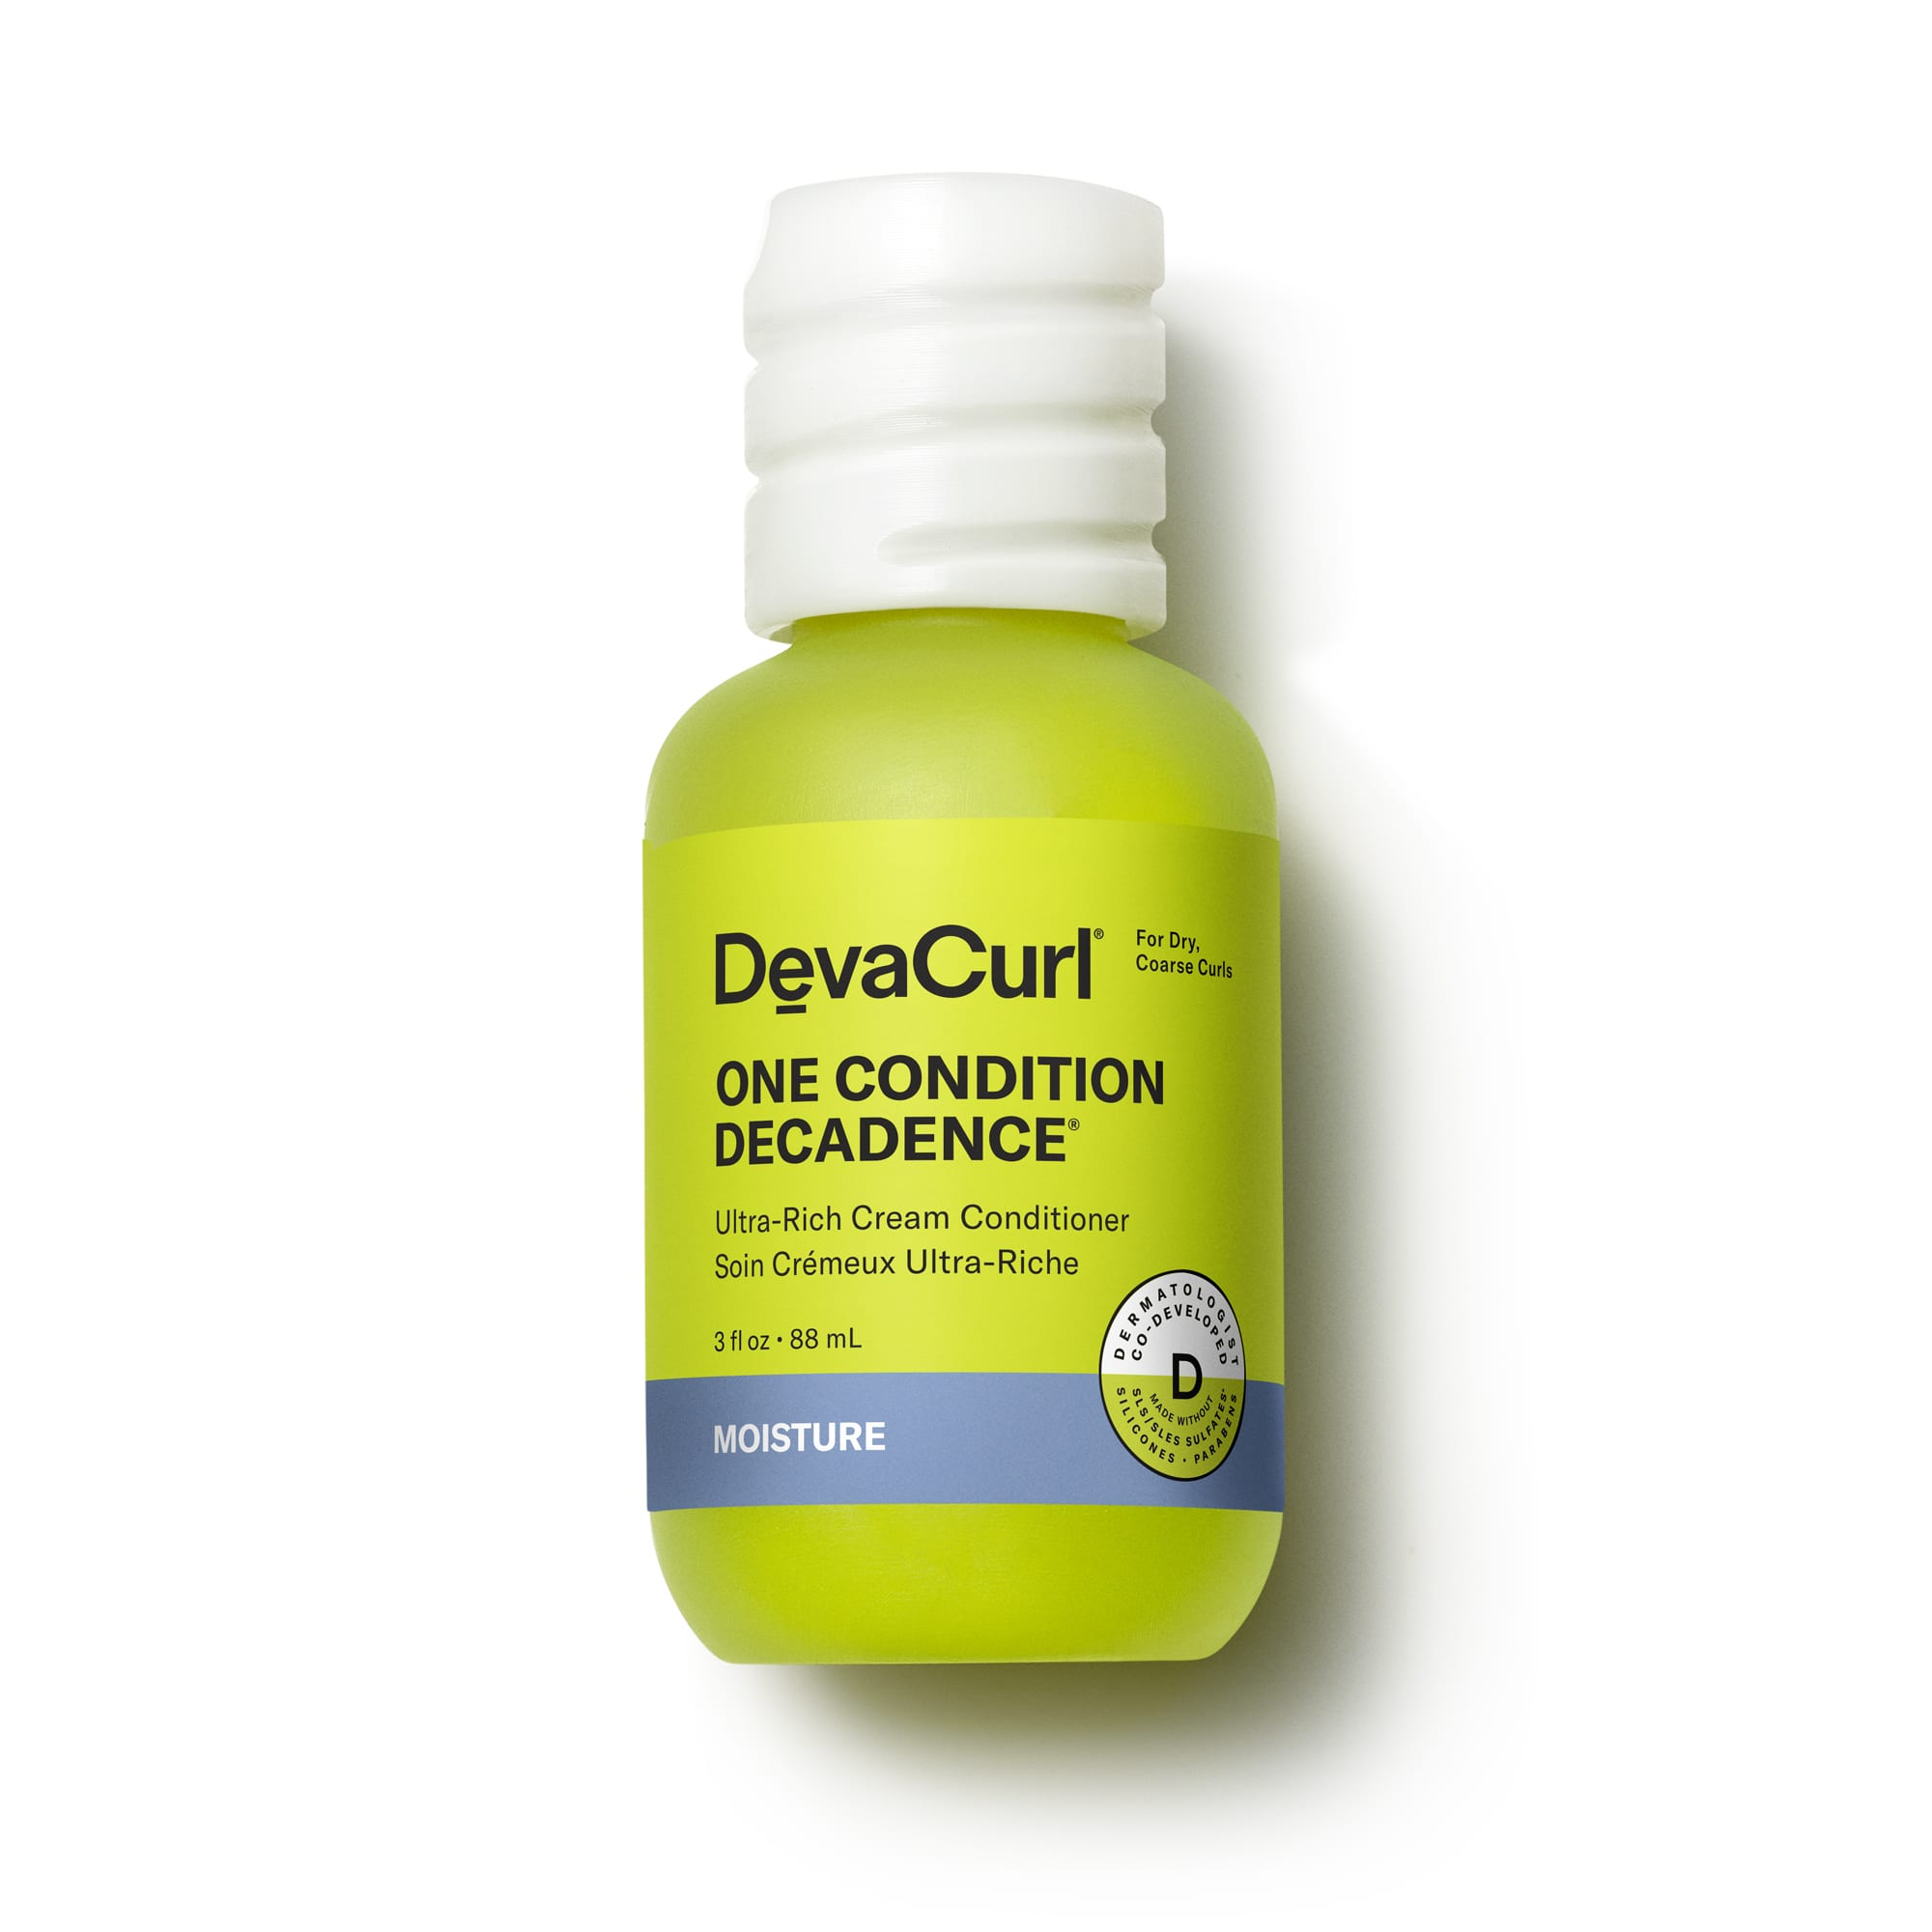 One Condition Decadence® 3 oz Bottle